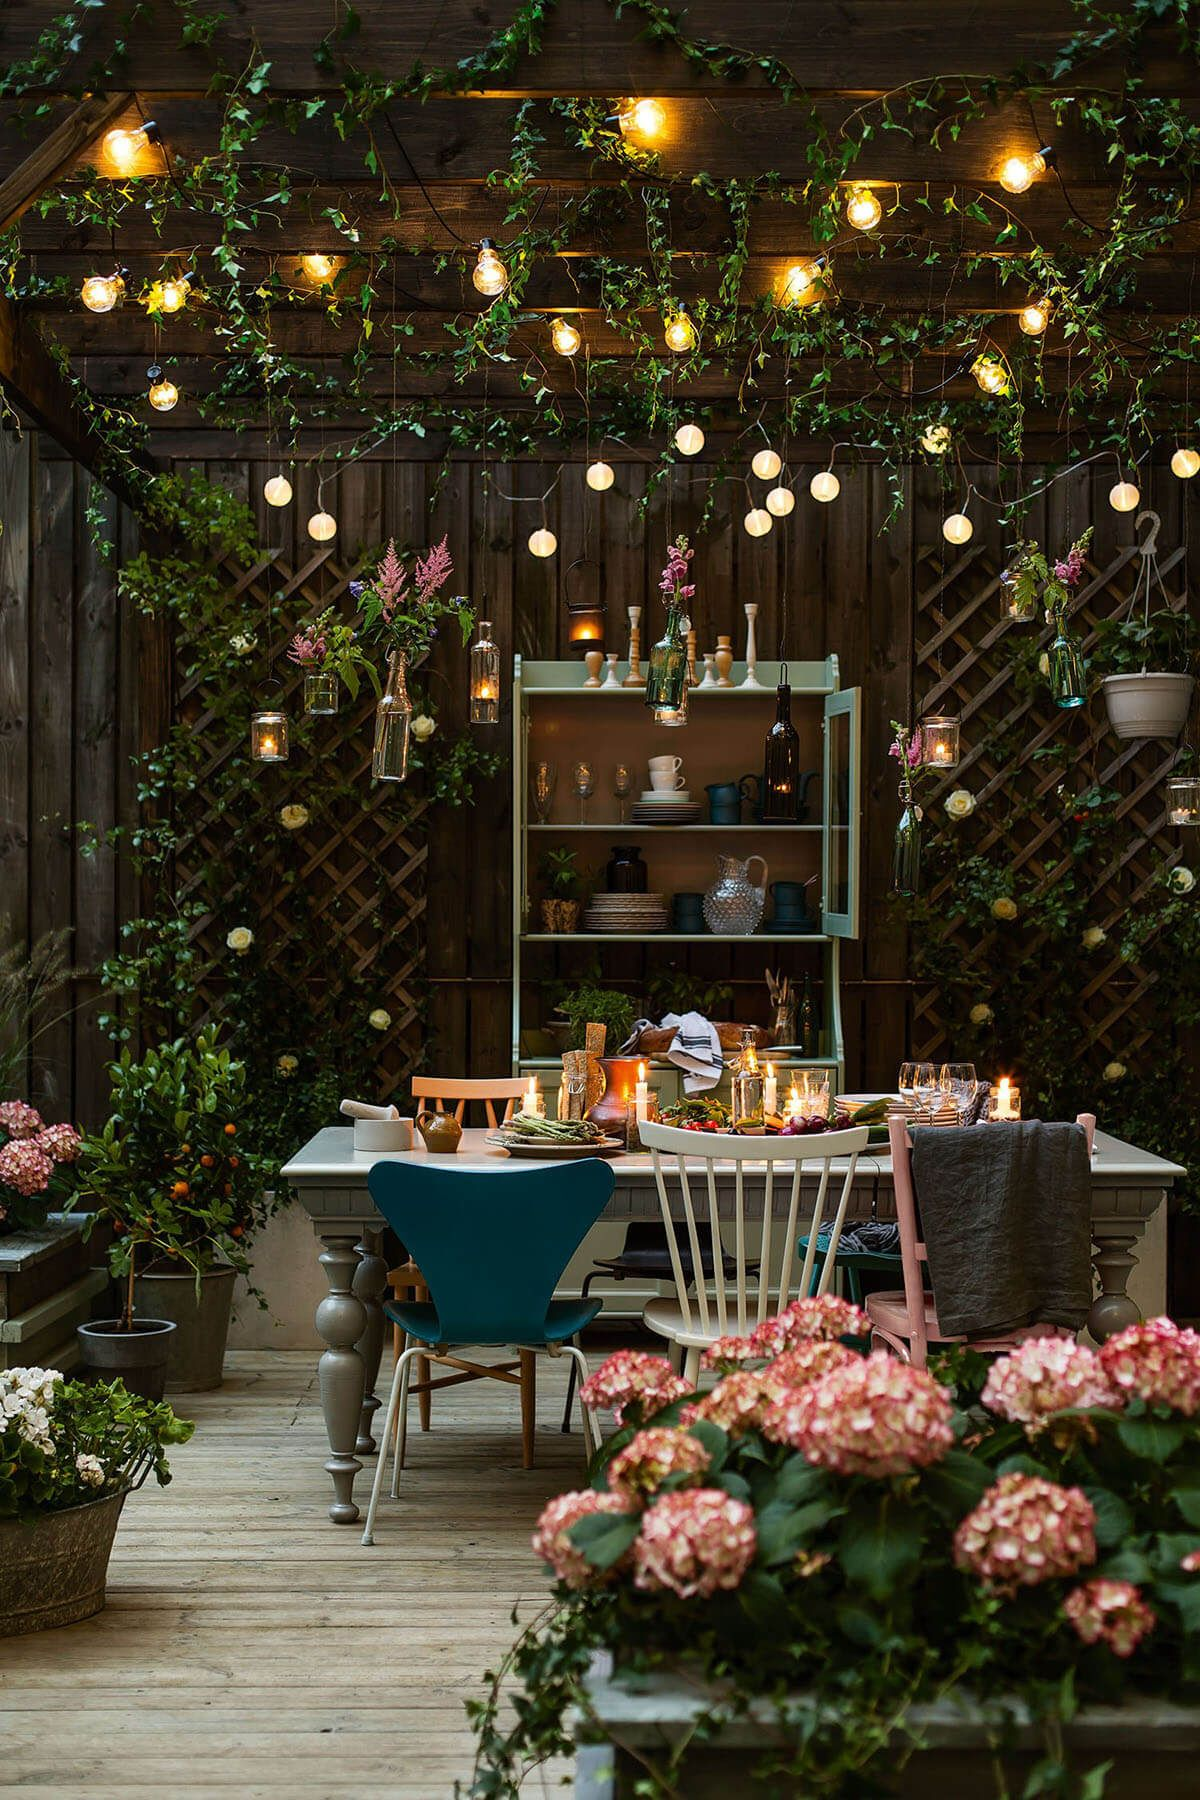 27 Pretty Backyard Lighting Ideas For Your Home In 2020 Backyard Lighting Outdoor Rooms Outdoor Living